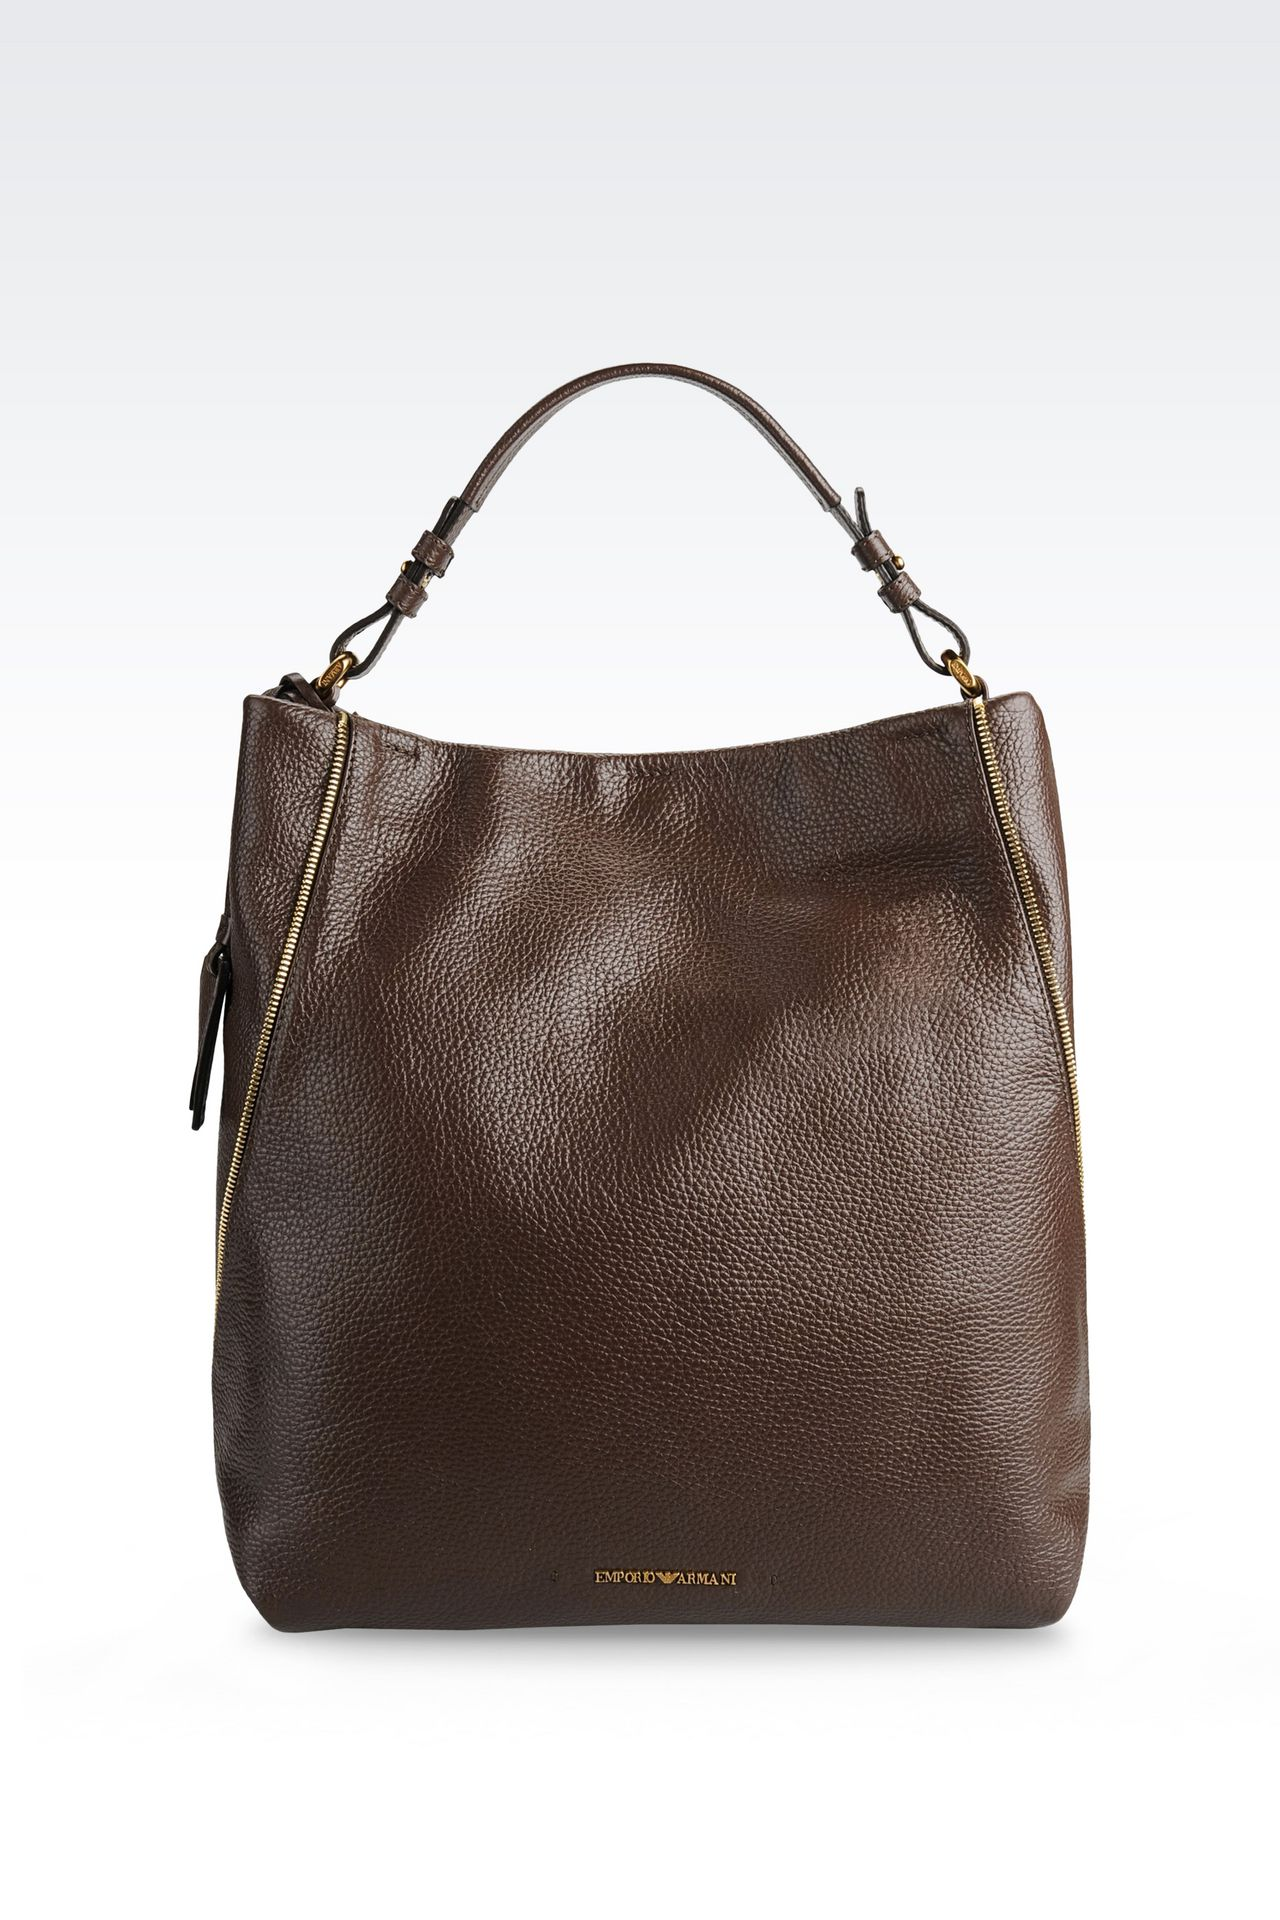 Emporio Armani Women Shoulder Bag - HOBO BAG IN PRINTED CALFSKIN WITH ZIP DETAILS Emporio Armani Official Online Store